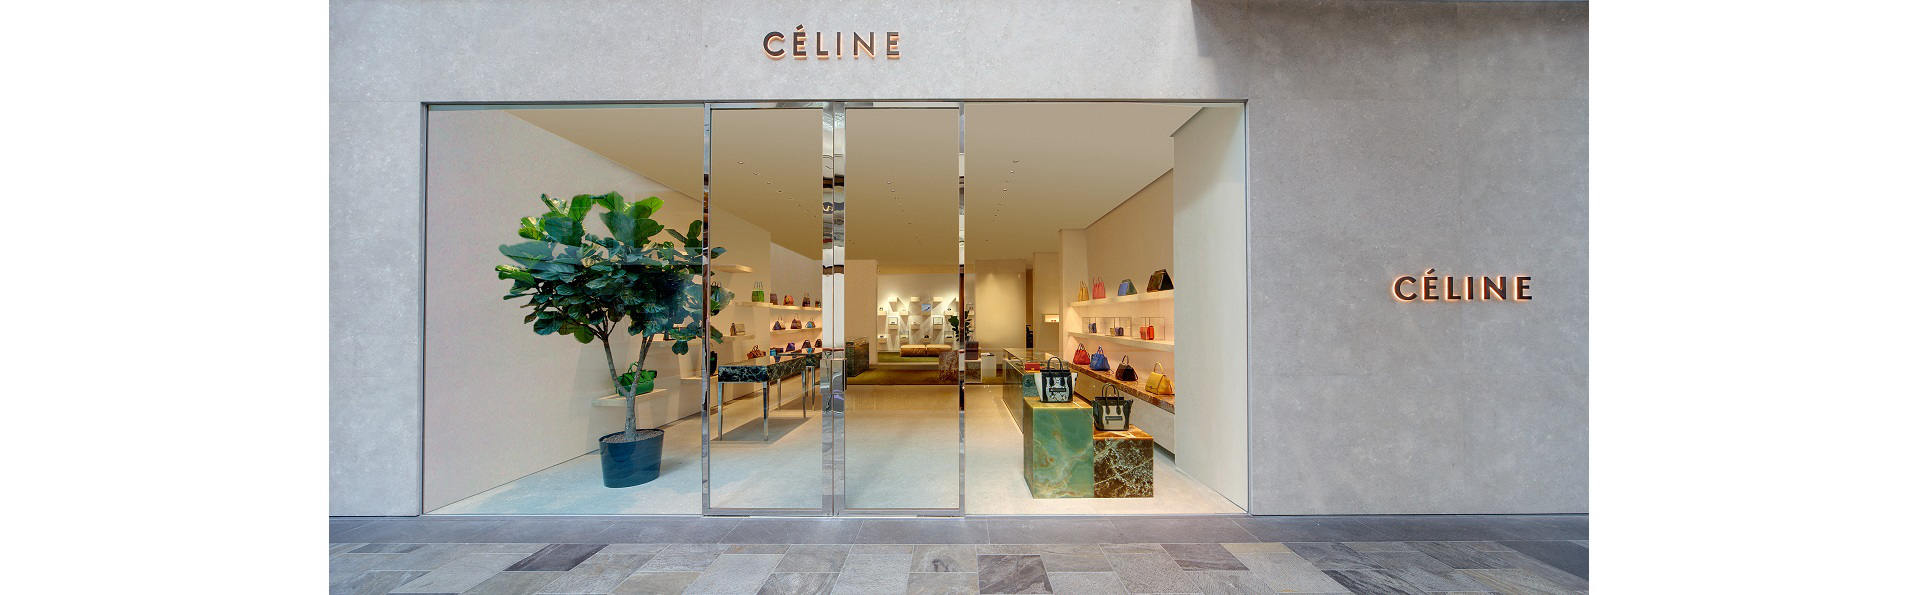 celine bag outlet h48i  celine bag outlet